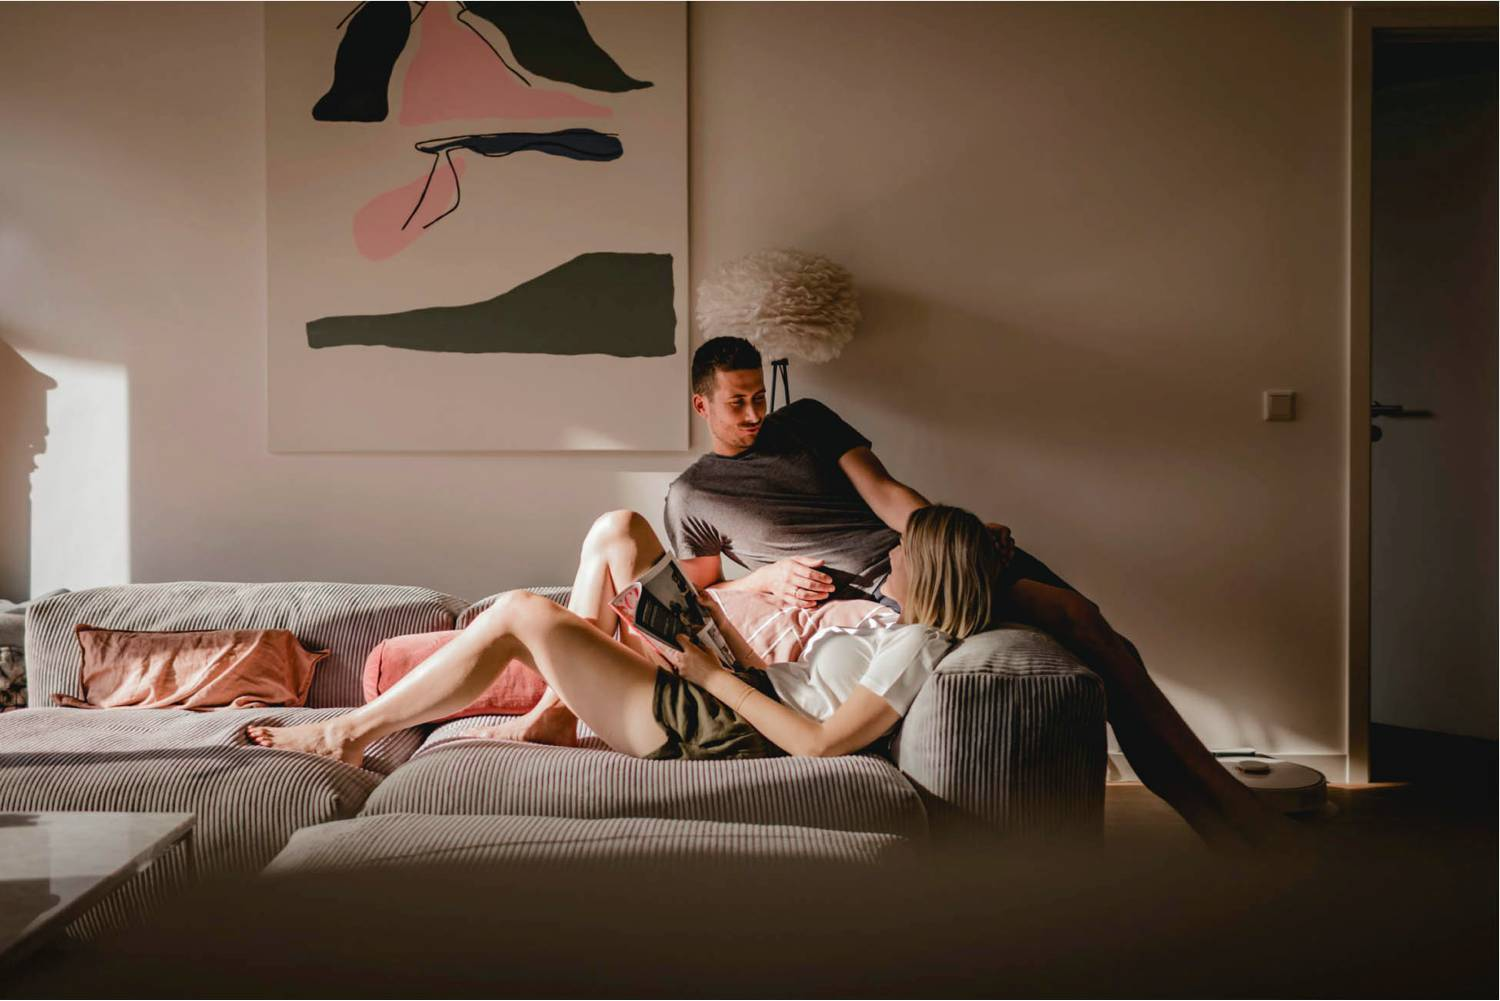 Photo: Diana Frohmueller's in-home lifestyle portrait of a couple depicts them reclining on a large gray sofa. An abstract painting hands on the wall behind them.